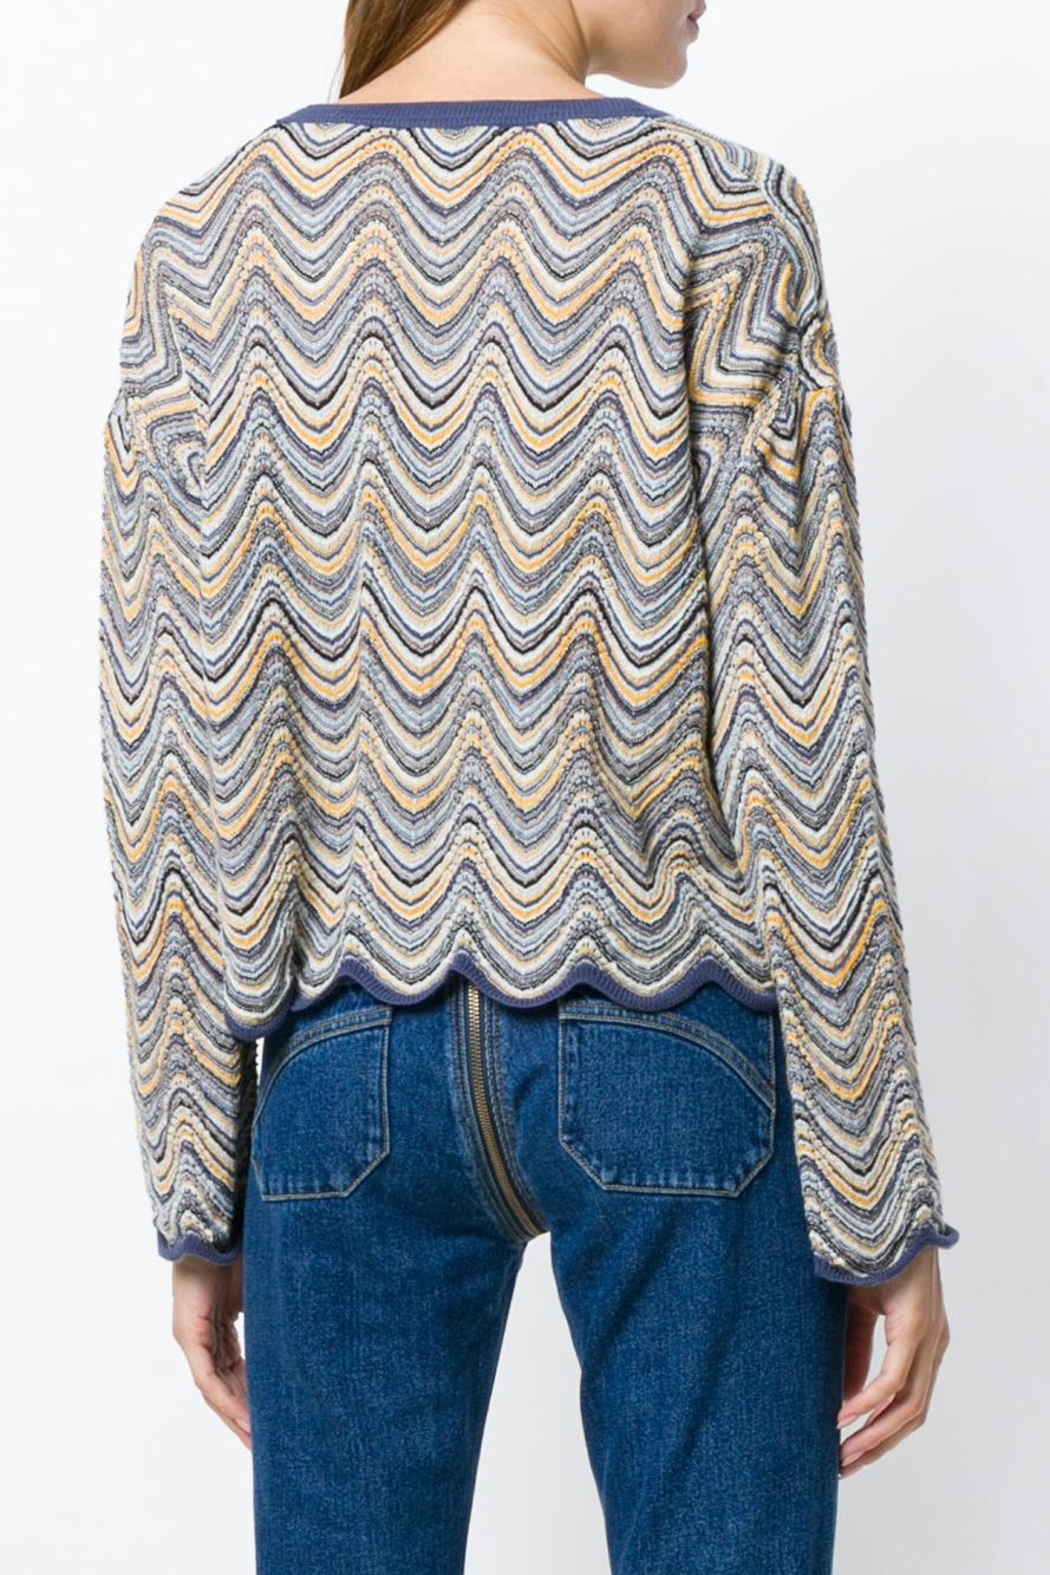 MiH Jeans Arlo Sweater - Back Cropped Image